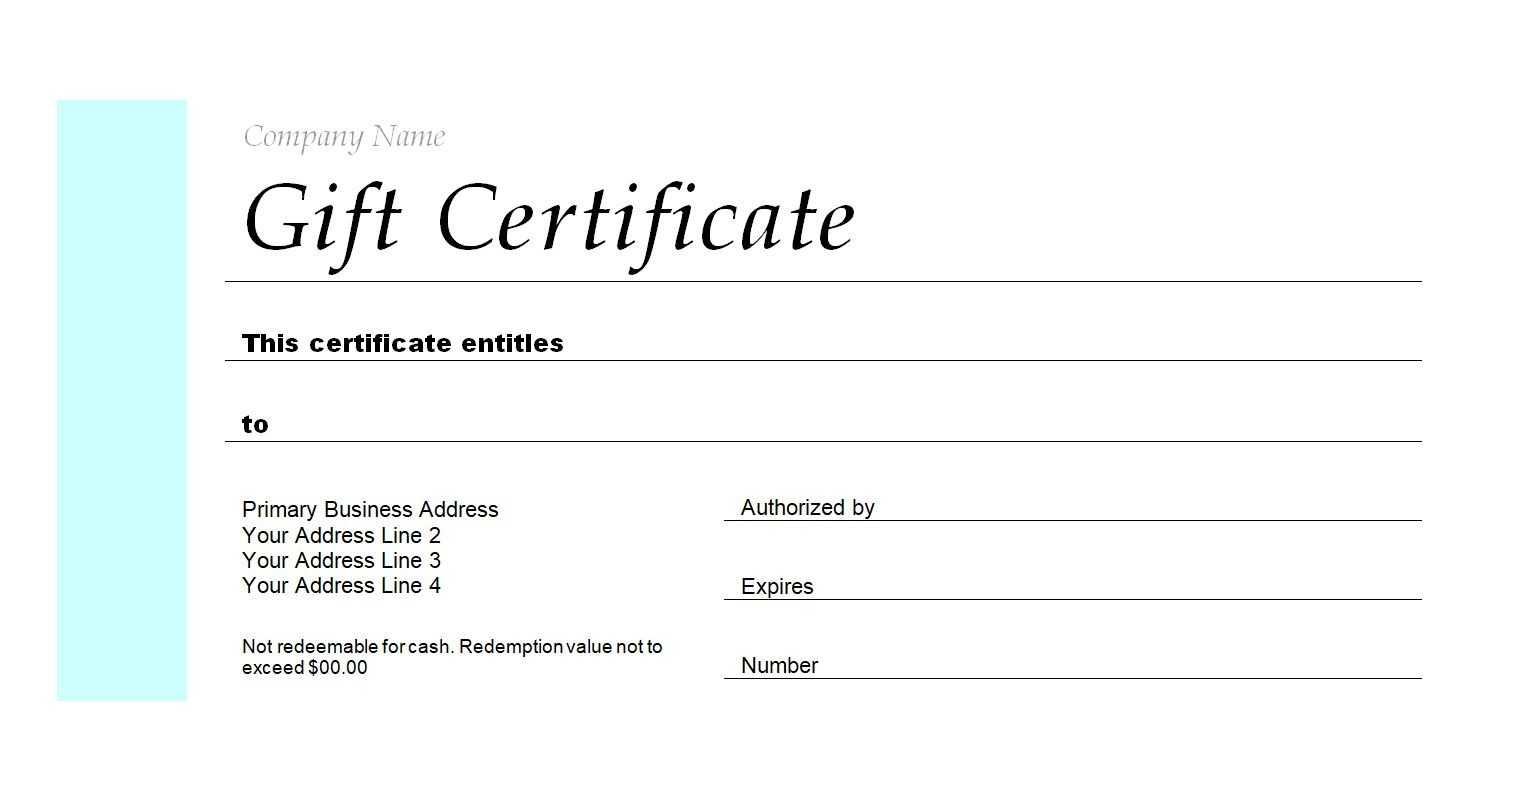 173 Free Gift Certificate Templates You Can Customize Fit To Inside Fit To Fly Certificate Template